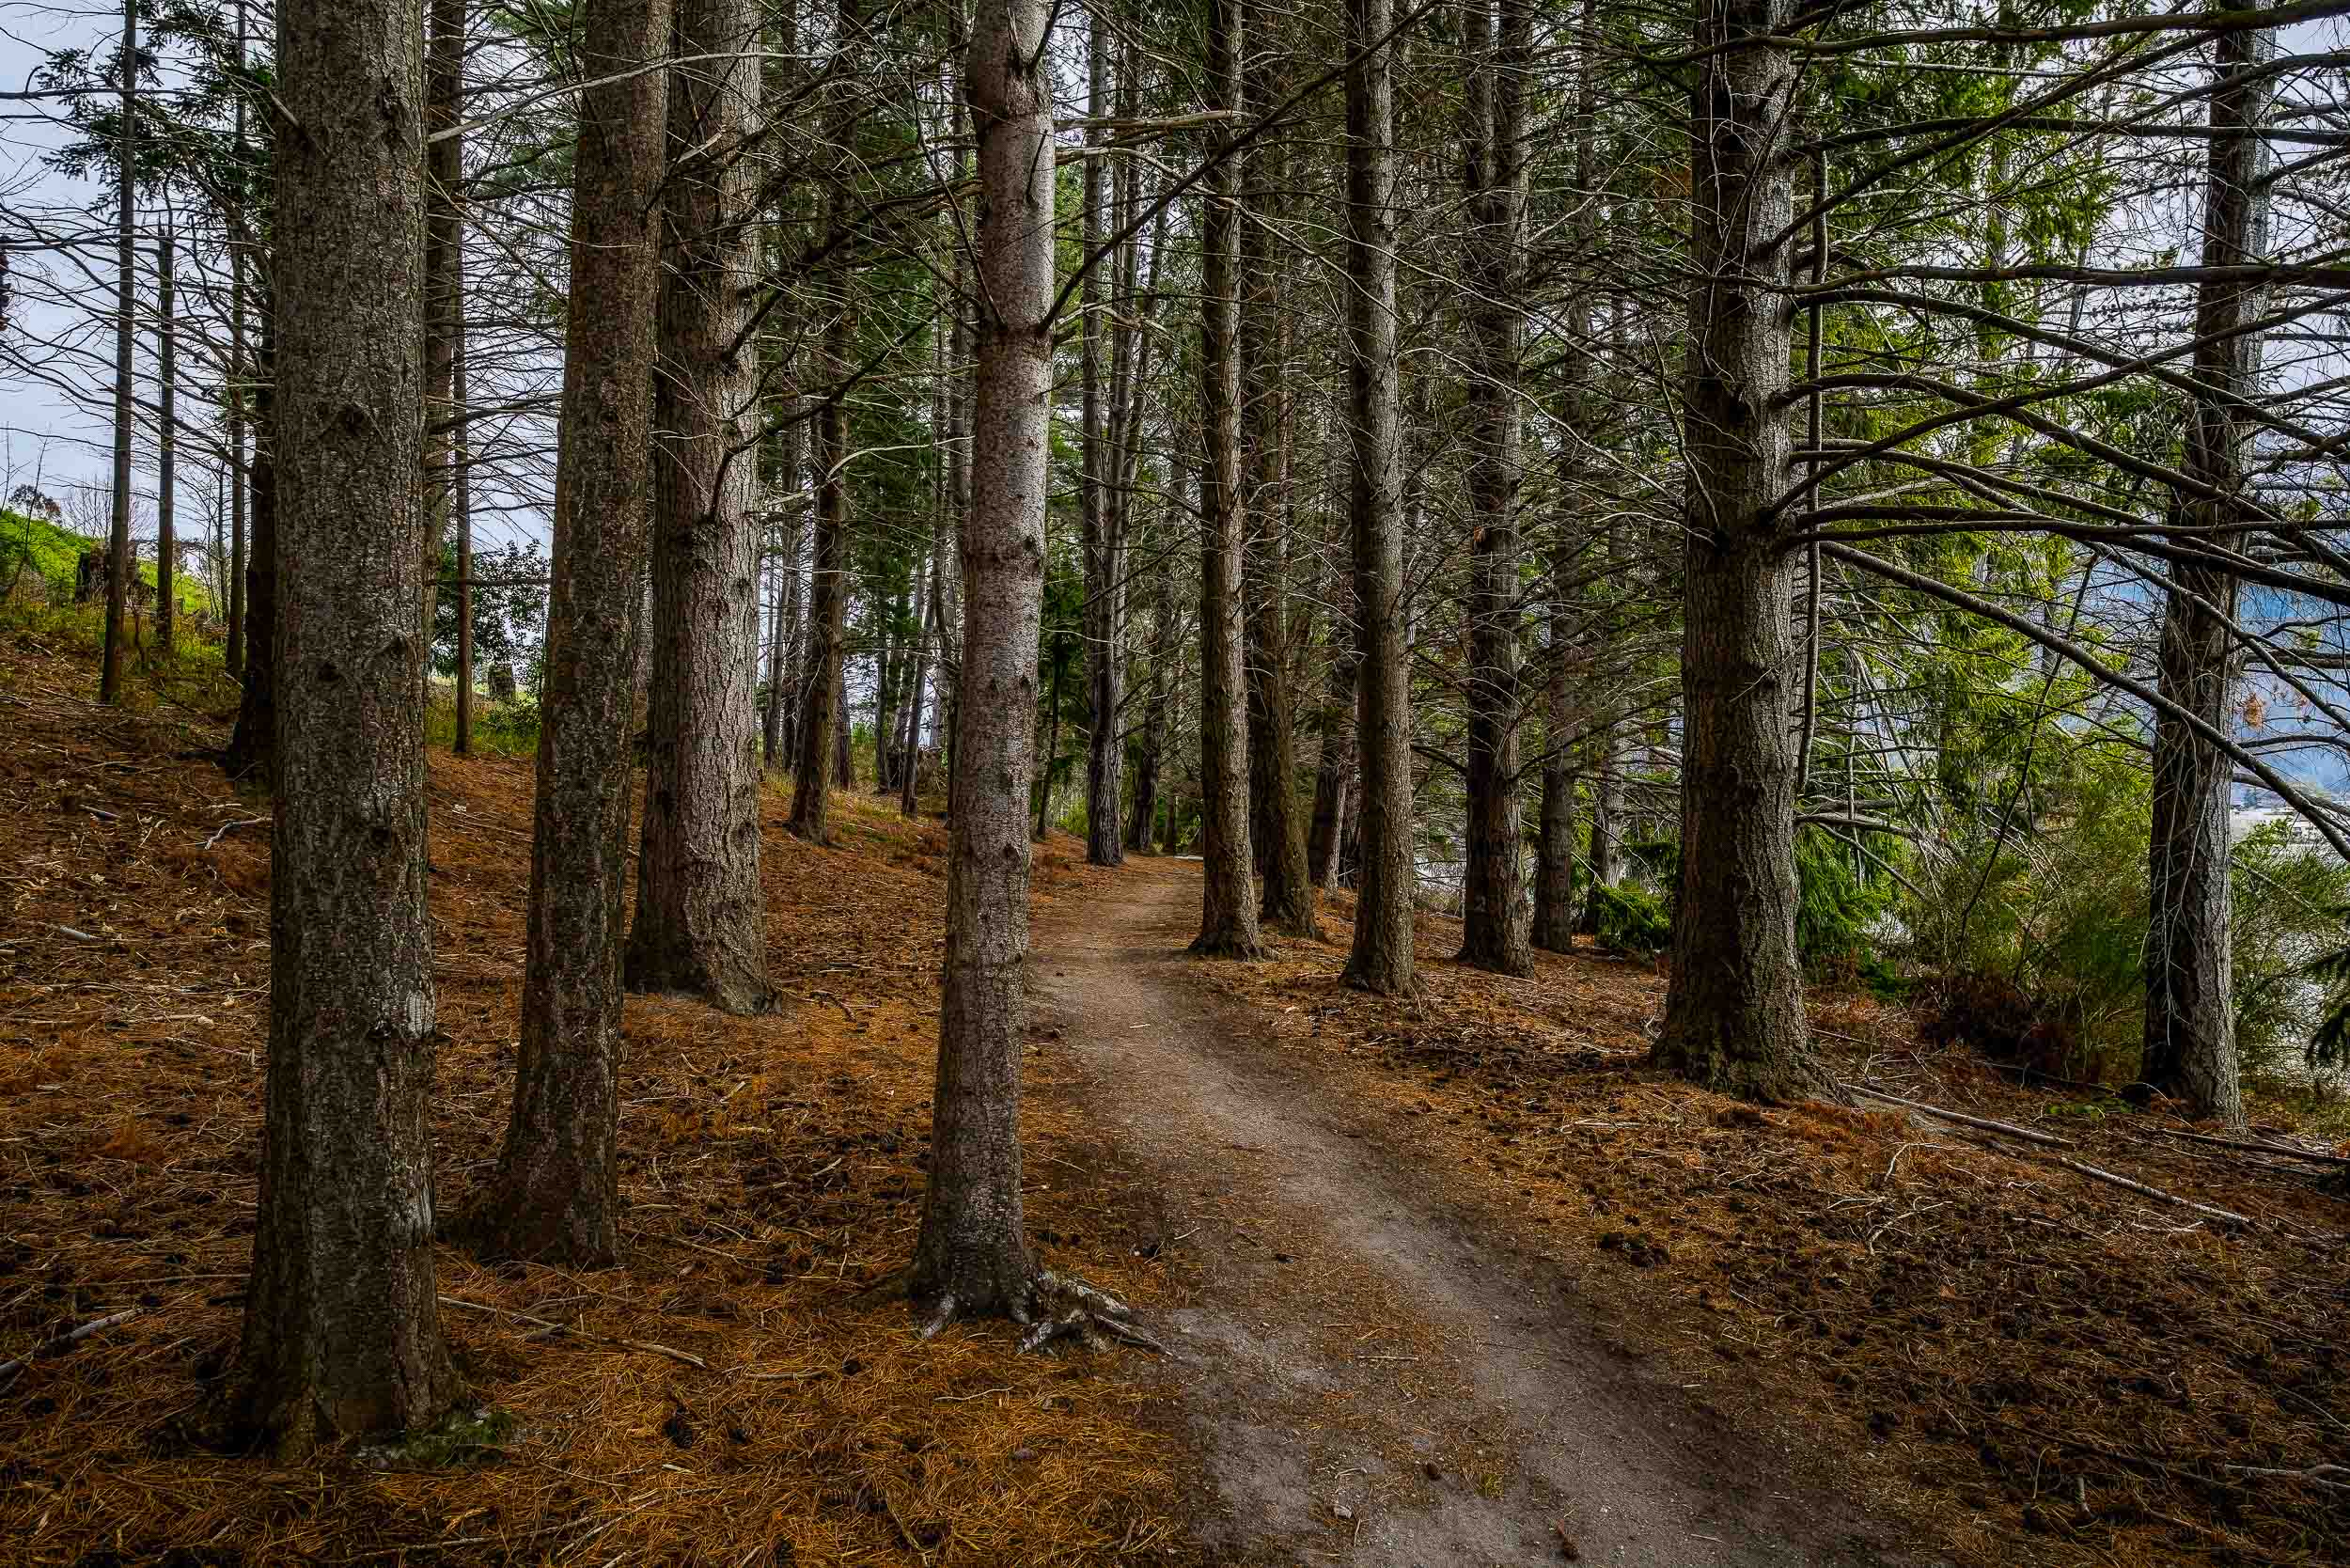 A narrow path leads through a    stand of pine trees    on the outskirts of    Queenstown    in Otago,    New Zealand   .